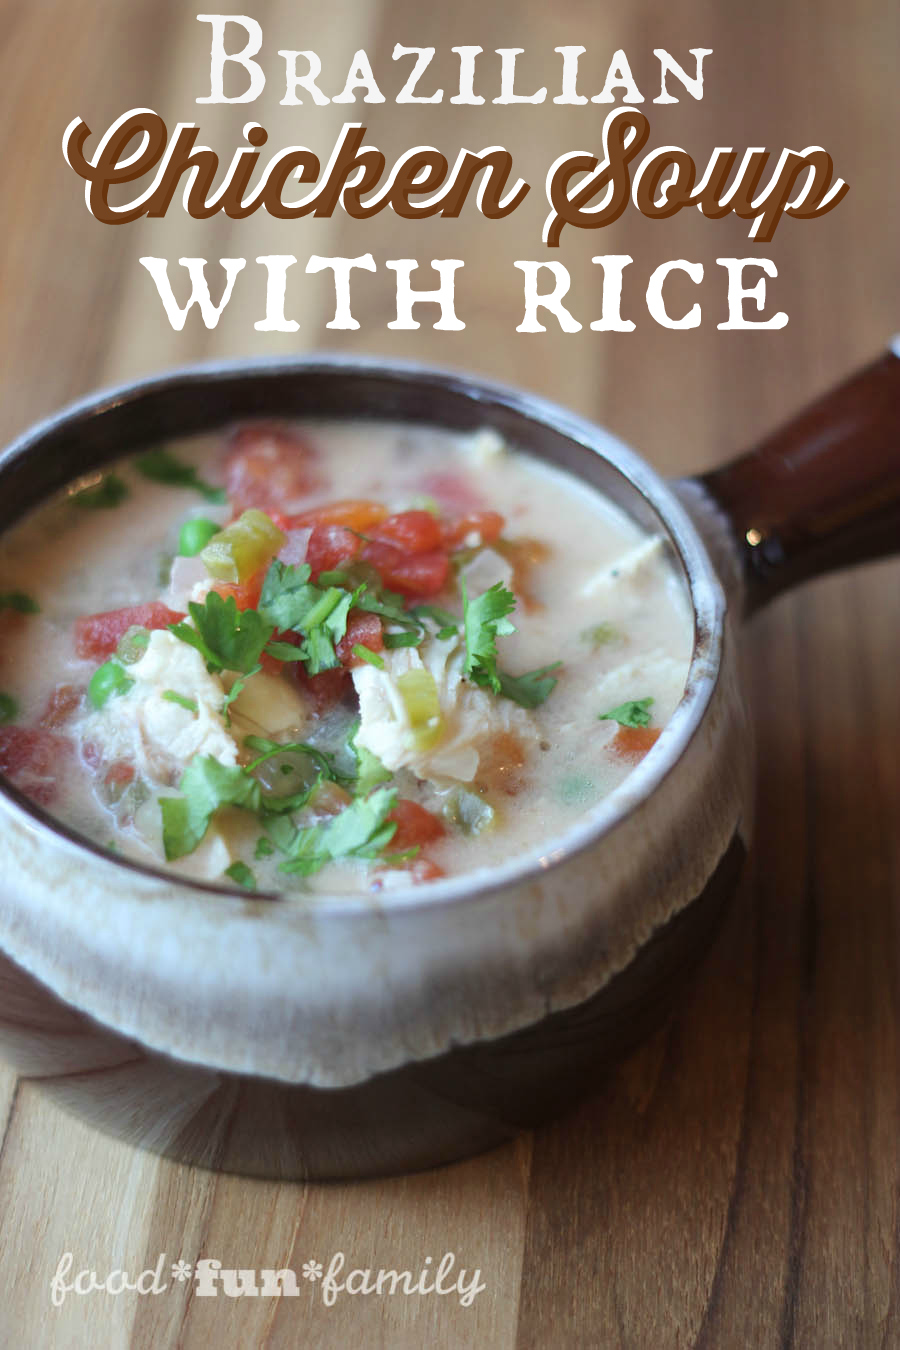 Brazilian Chicken Soup With Rice Recipe from Food Fun Family